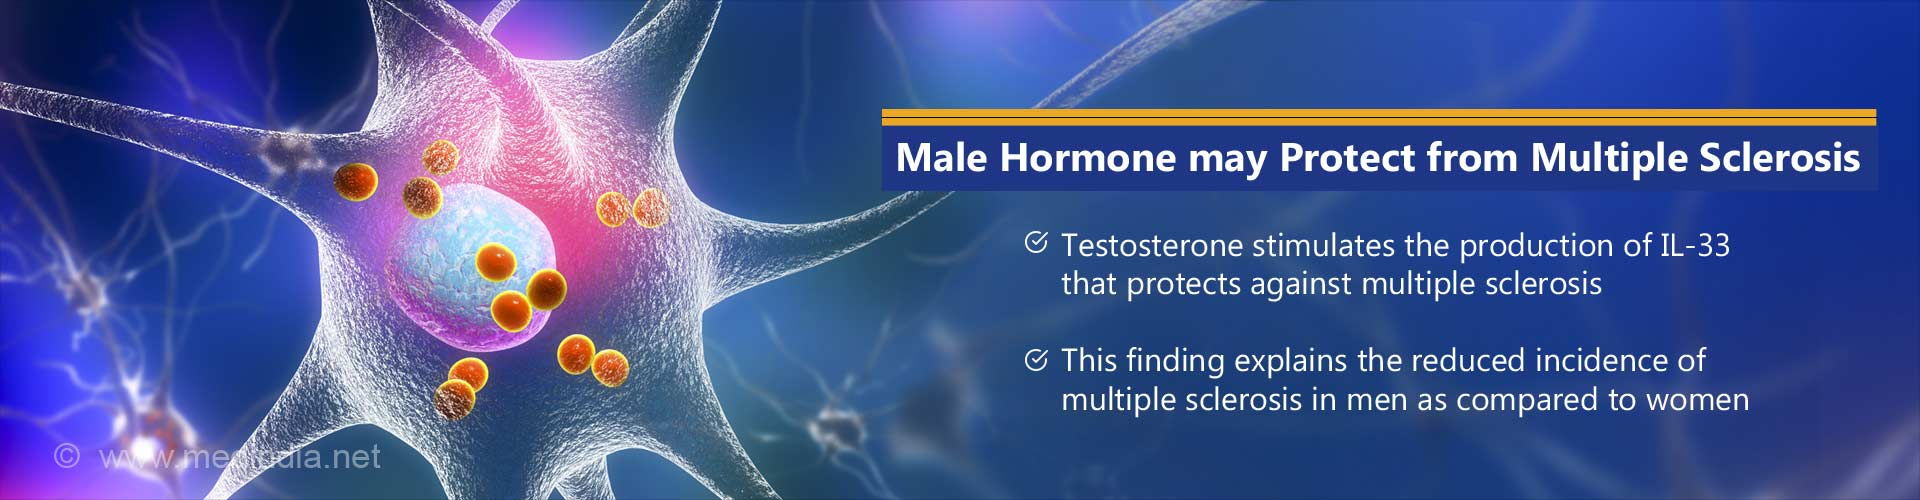 Possible Mechanism for Protective Effect of Testosterone in Multiple Sclerosis Uncovered